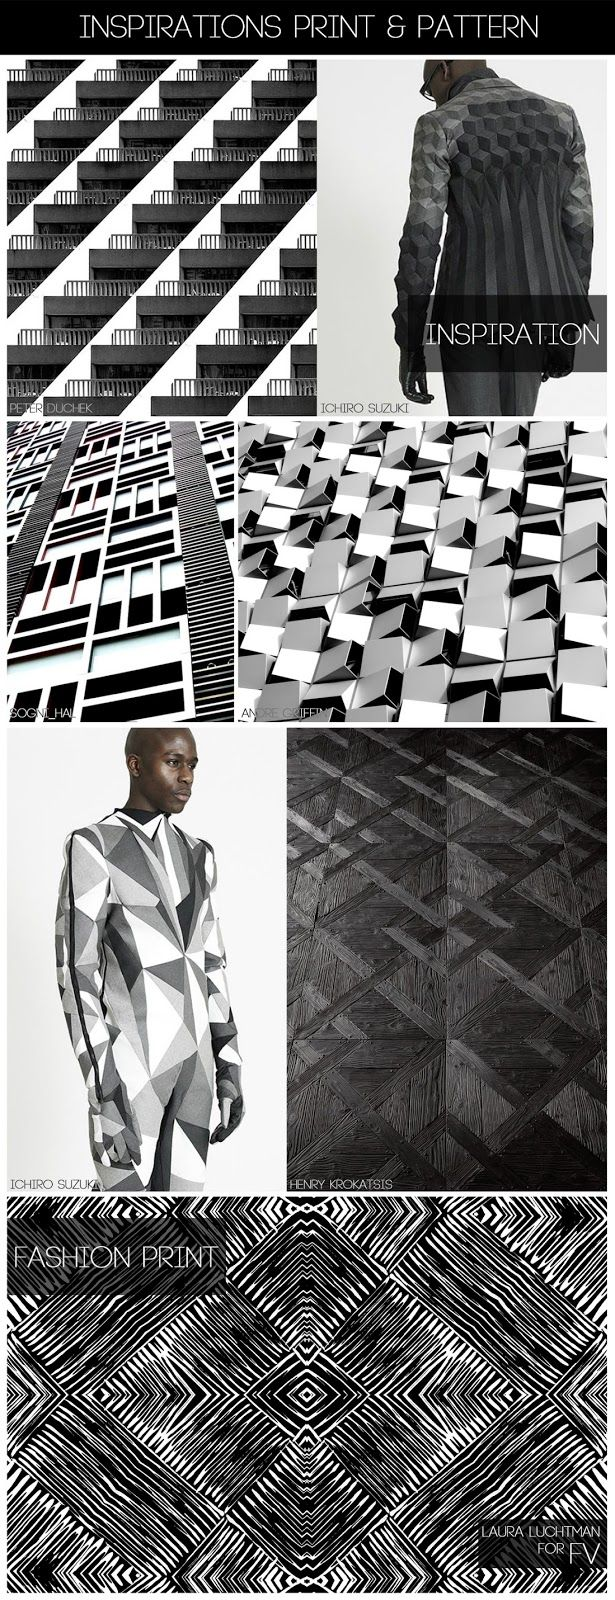 FASHION VIGNETTE: [ INSPIRATIONS PRINT + PATTERN ] KUKKA by Laura Luchtman #AW1415 #Monochrome #PrintPattern